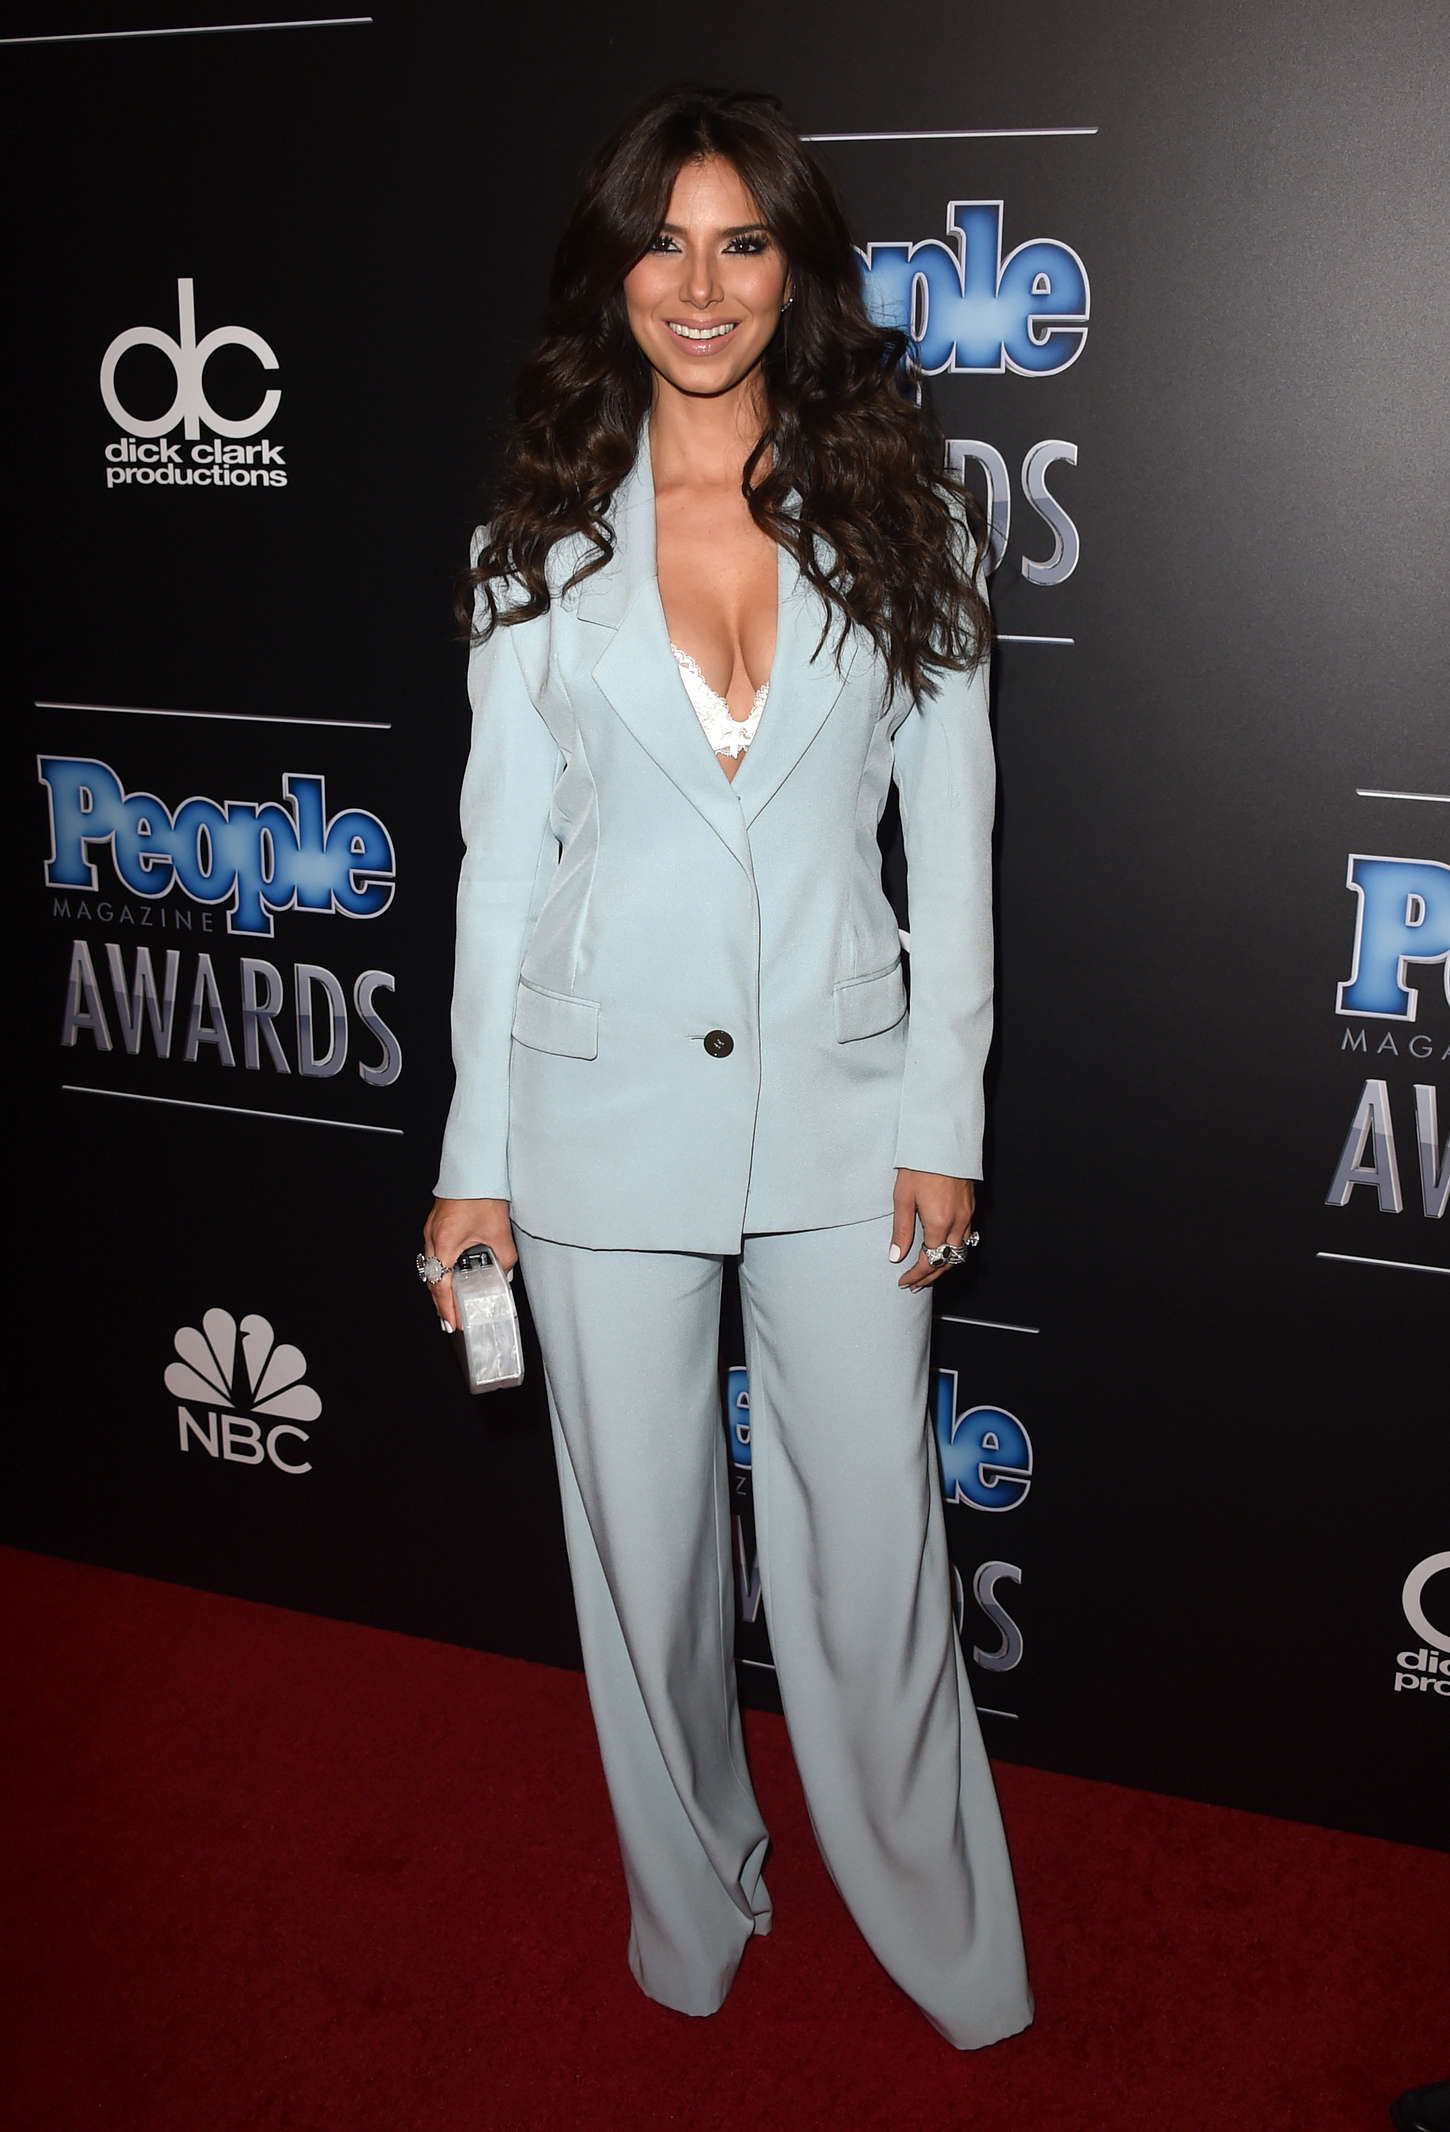 Roselyn Sanchez PEOPLE Magazine Awards in Beverly Hills